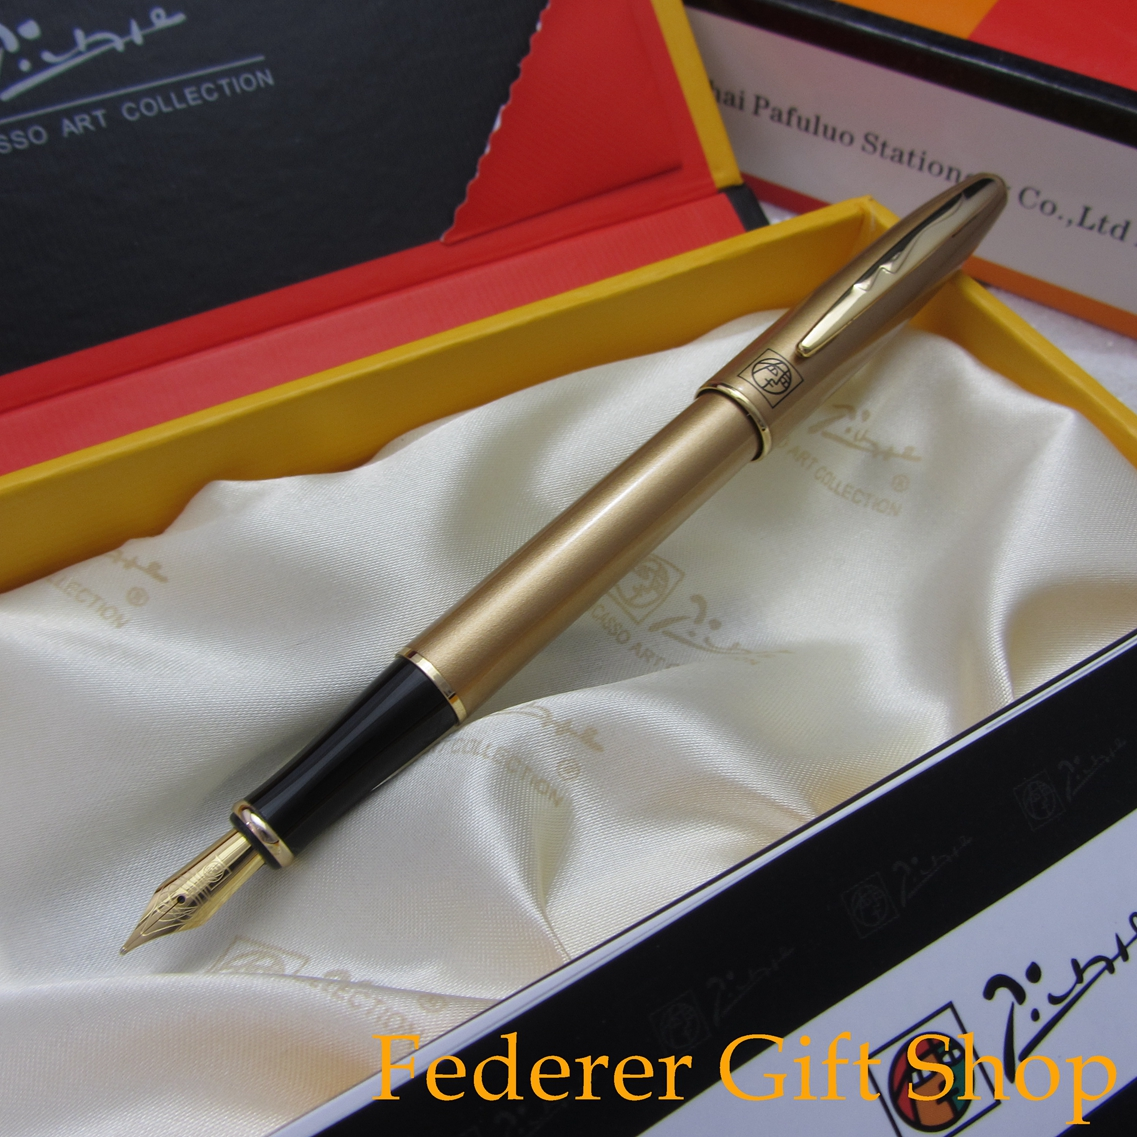 Original Box Picasso U606 Gold Fountain Pen Business Gift Pen Ultra-fine Ink Pen 9901 fine financia pen student pen art fountain pen 0 38 0 5 0 8mm optional gift box set